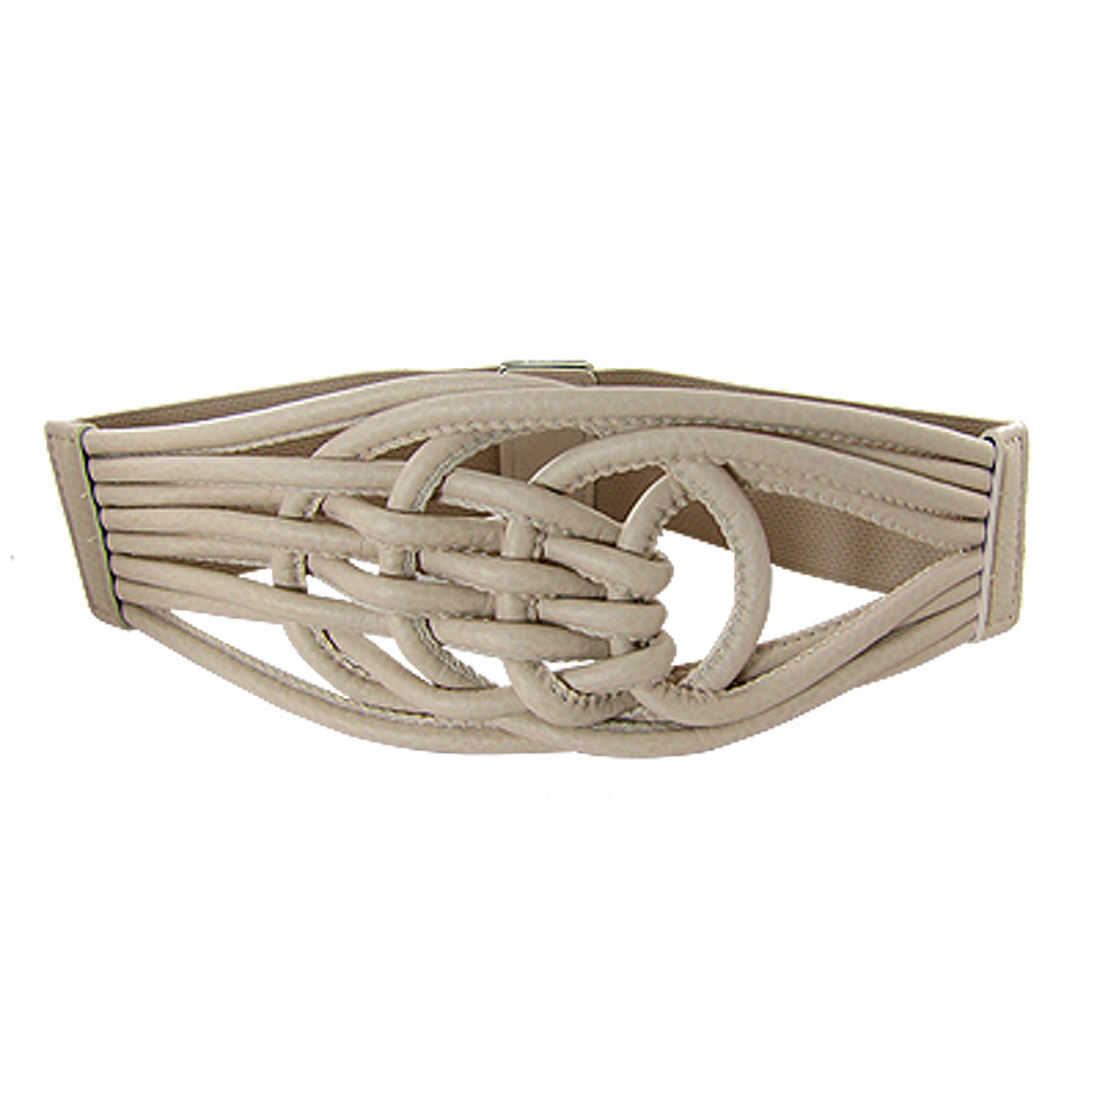 Ladies Whip Stitch Chinese Knot High Waist Belt Beige